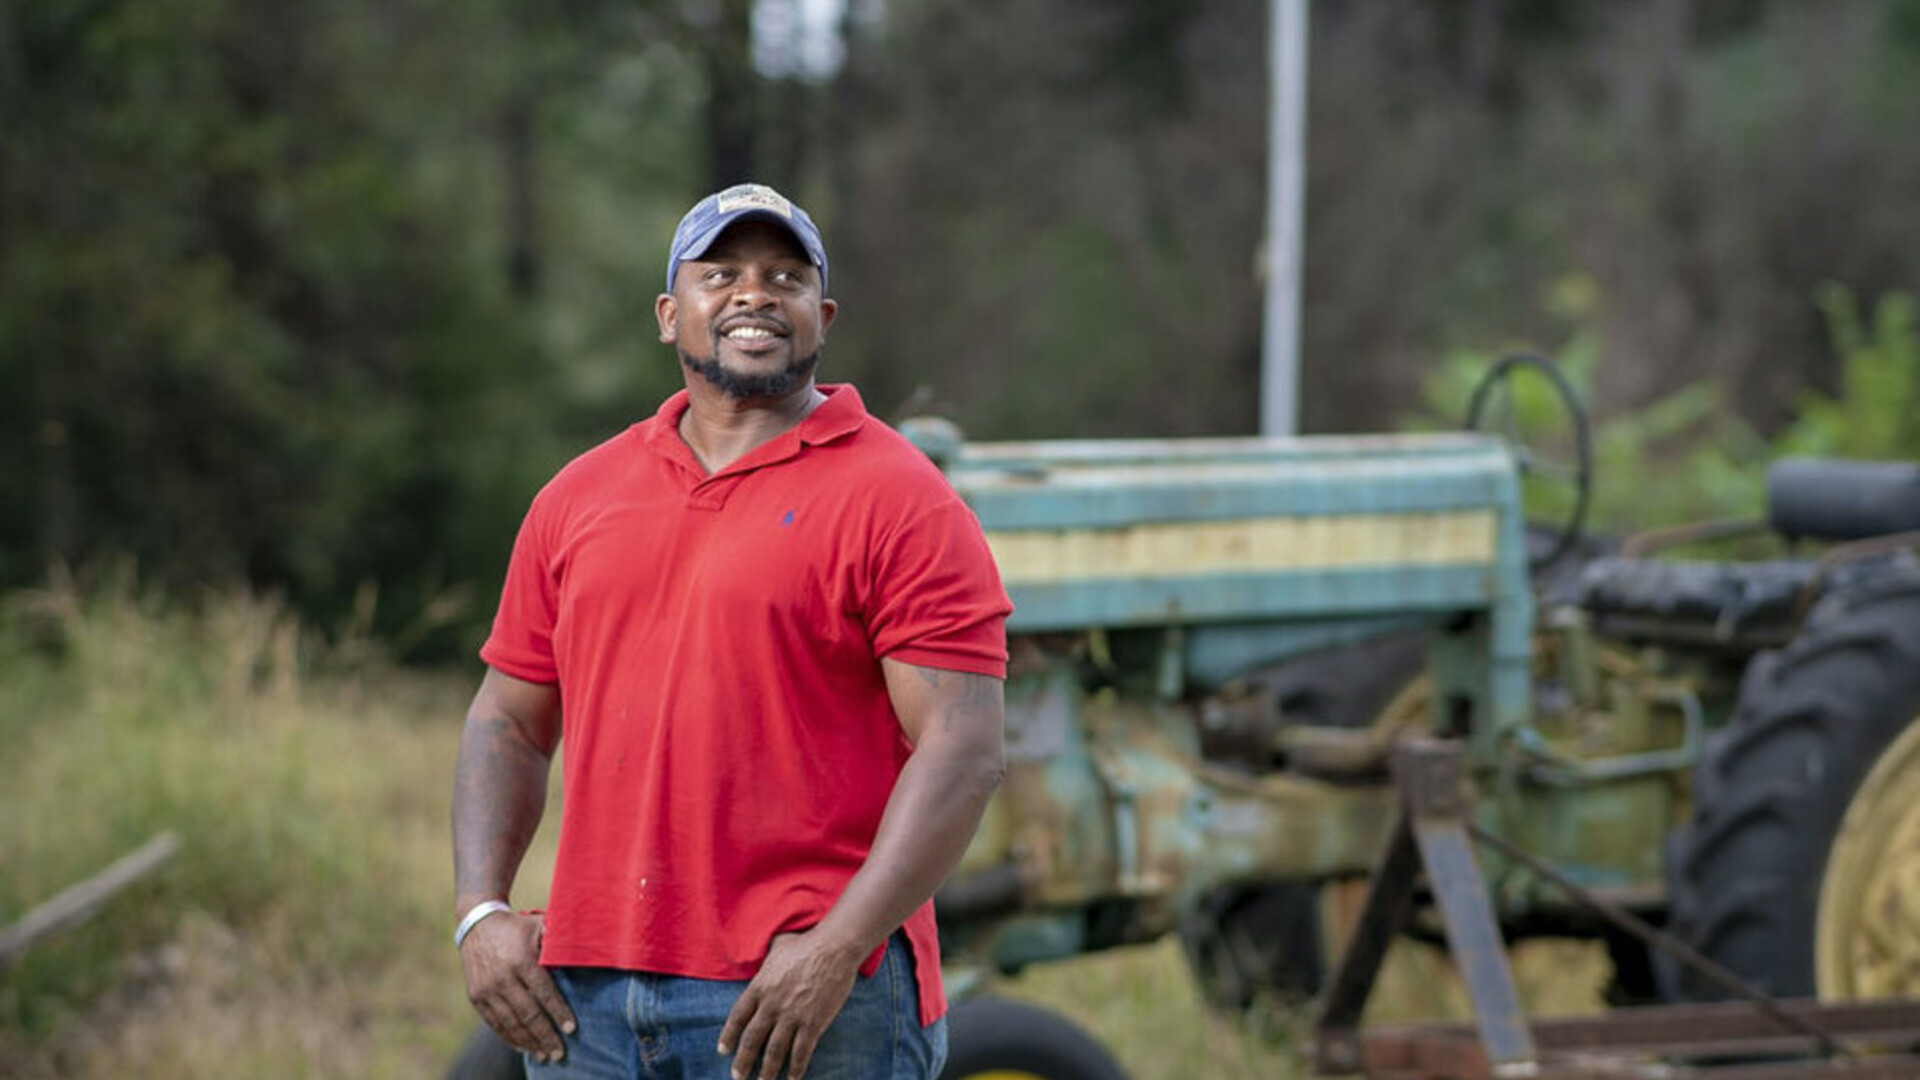 Comfort Farms Connects Veterans to Agriculture